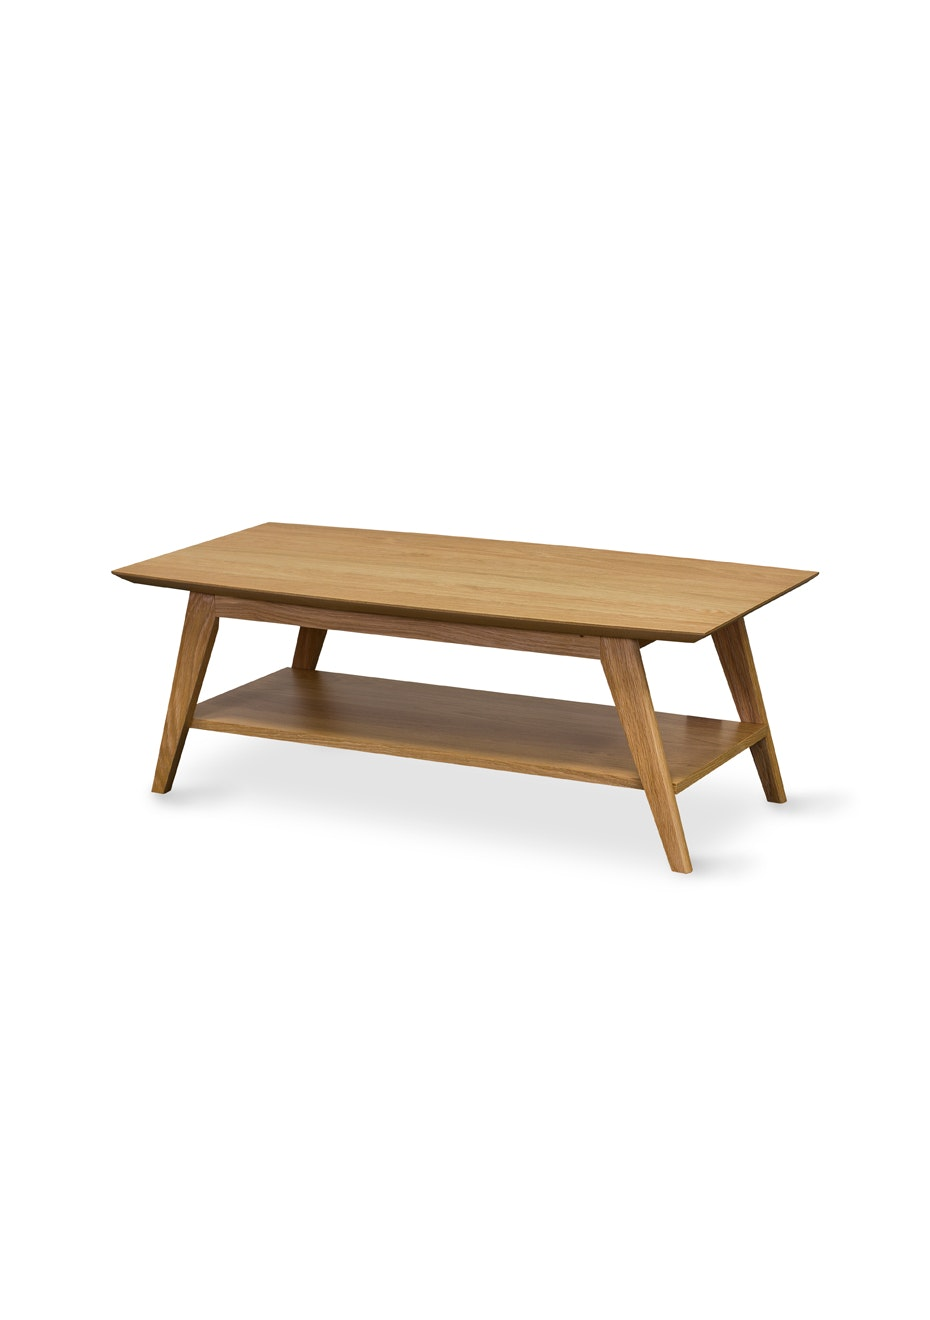 Furniture By Design - Milano Coffee Table- Light Oak